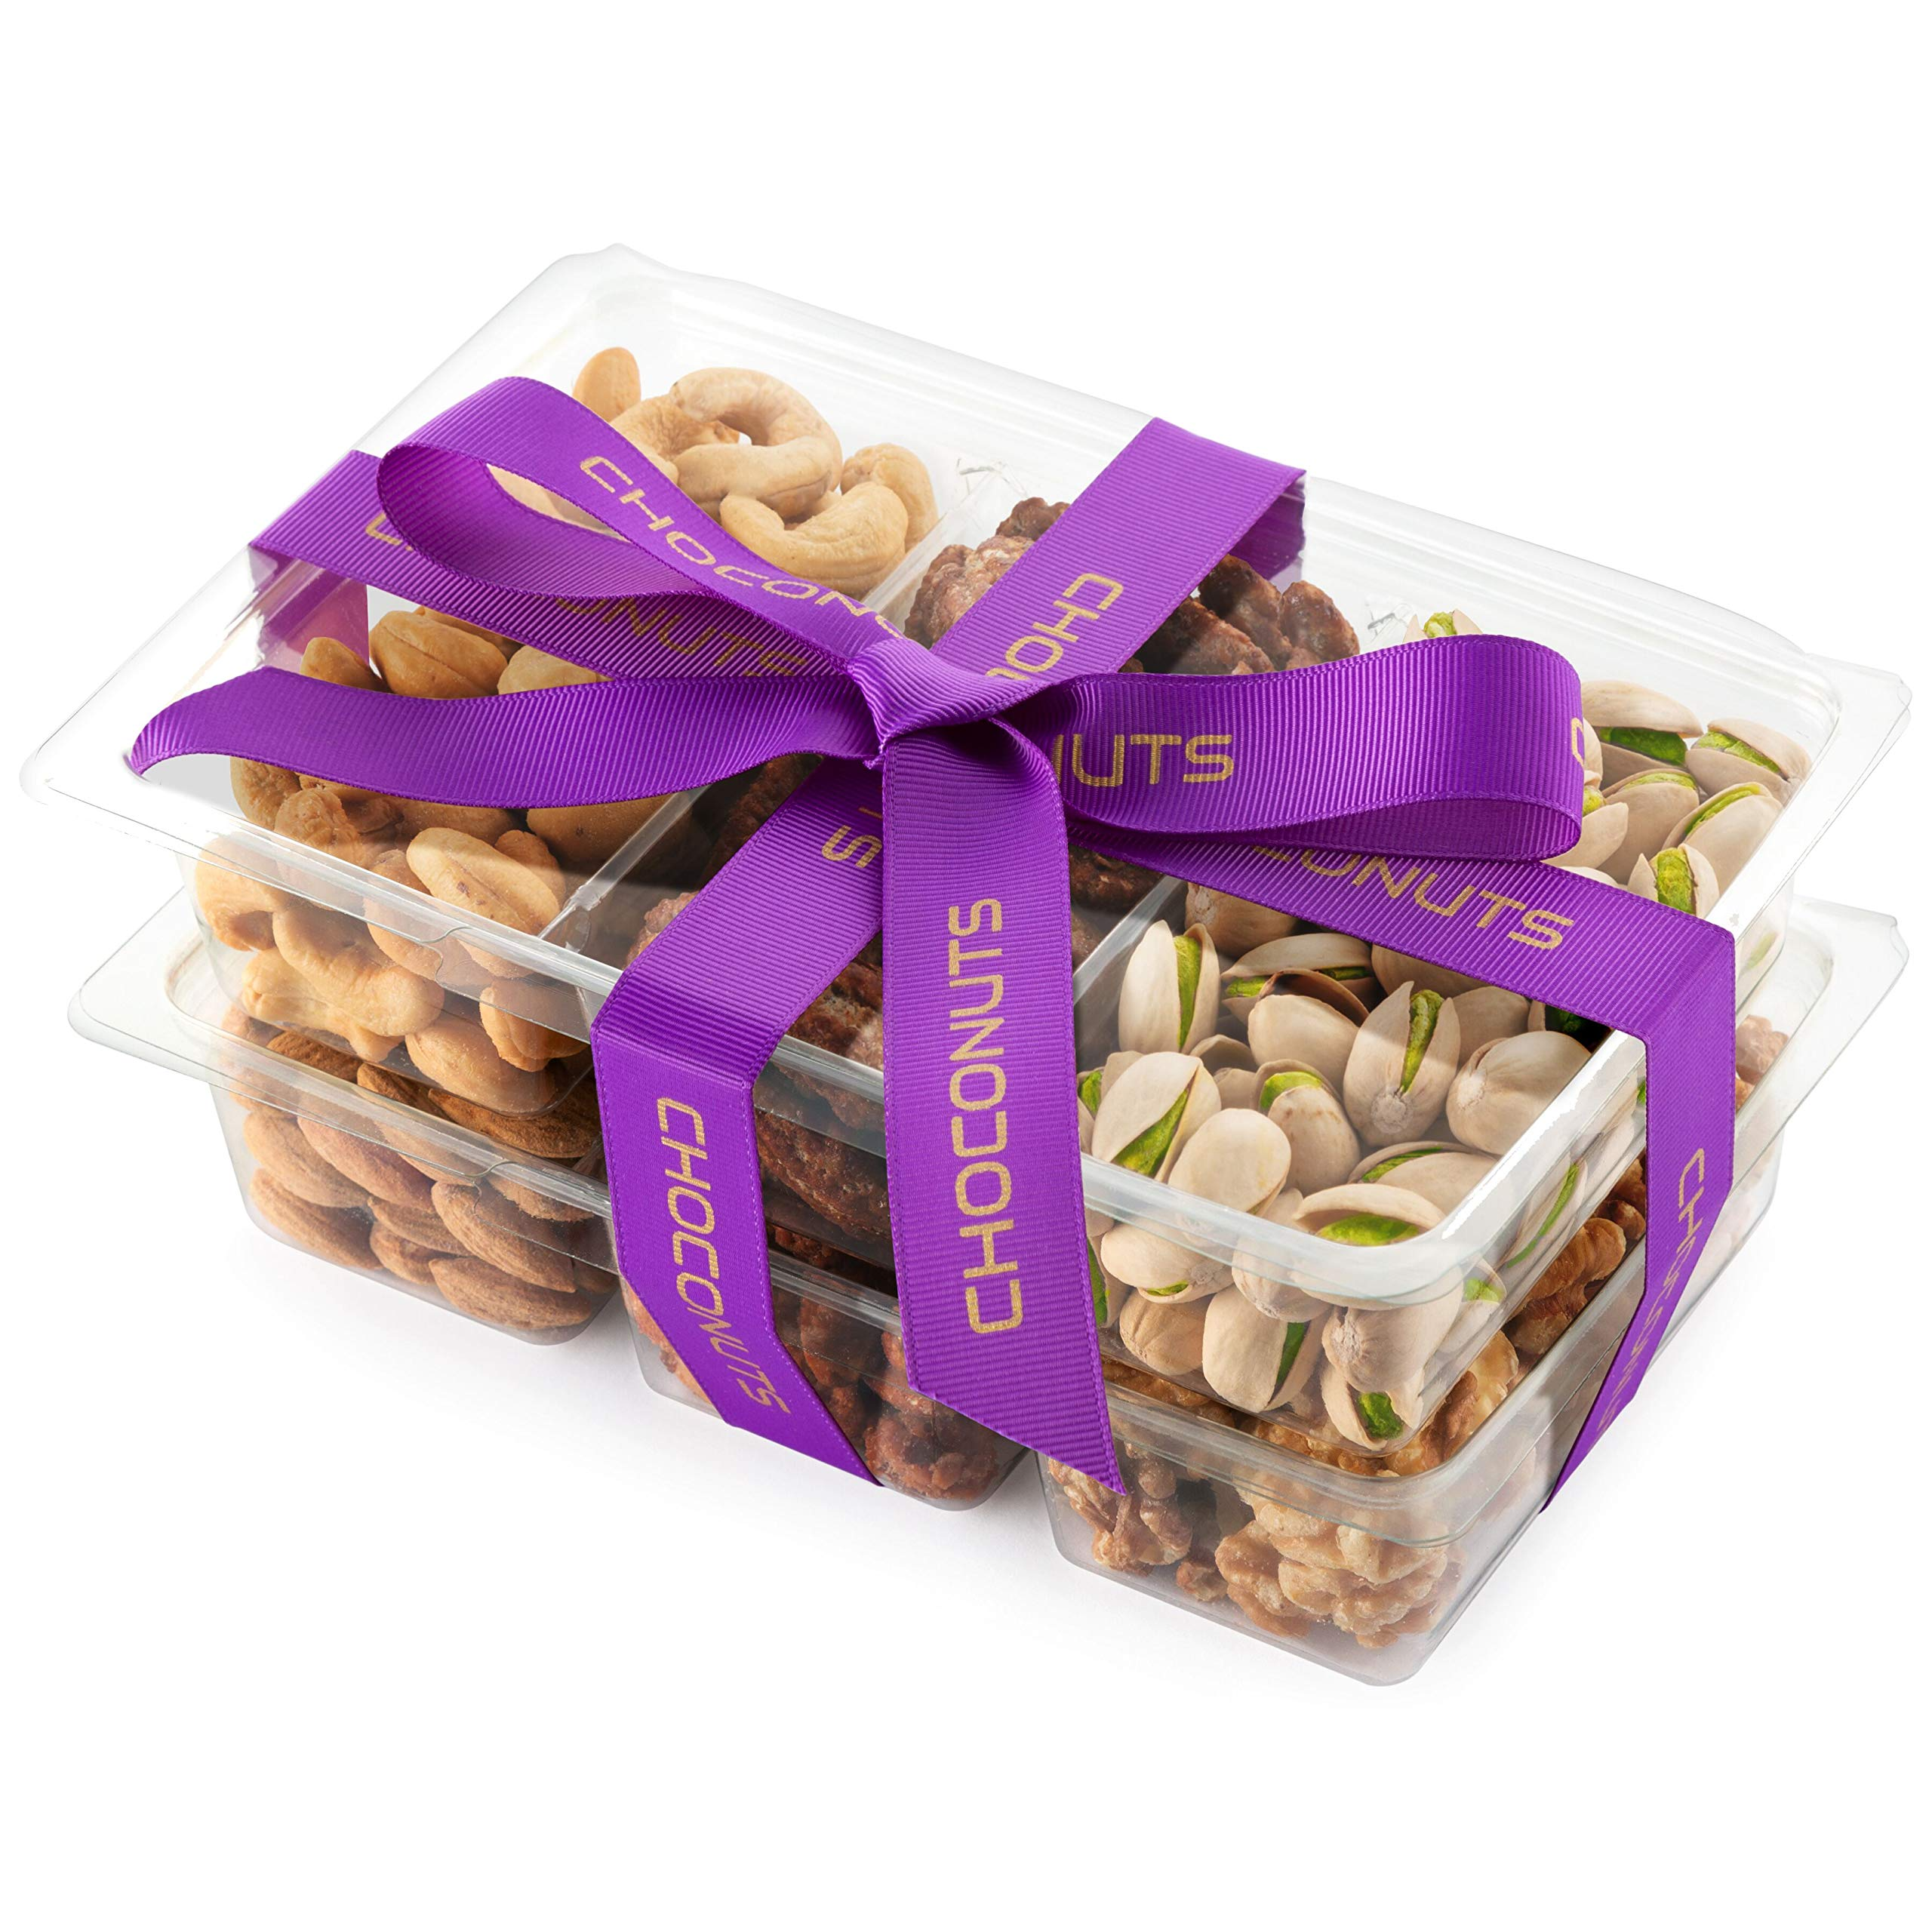 Choconuts Assorted Fresh Roasted Nut Gift Basket, Six Sectional Nut Tray, Great All Time Healthy Gift Box for Fathers Day, Mothers Day, Get Well Gift, Sympathy Basket, Hostess Gift, Just Because Gift